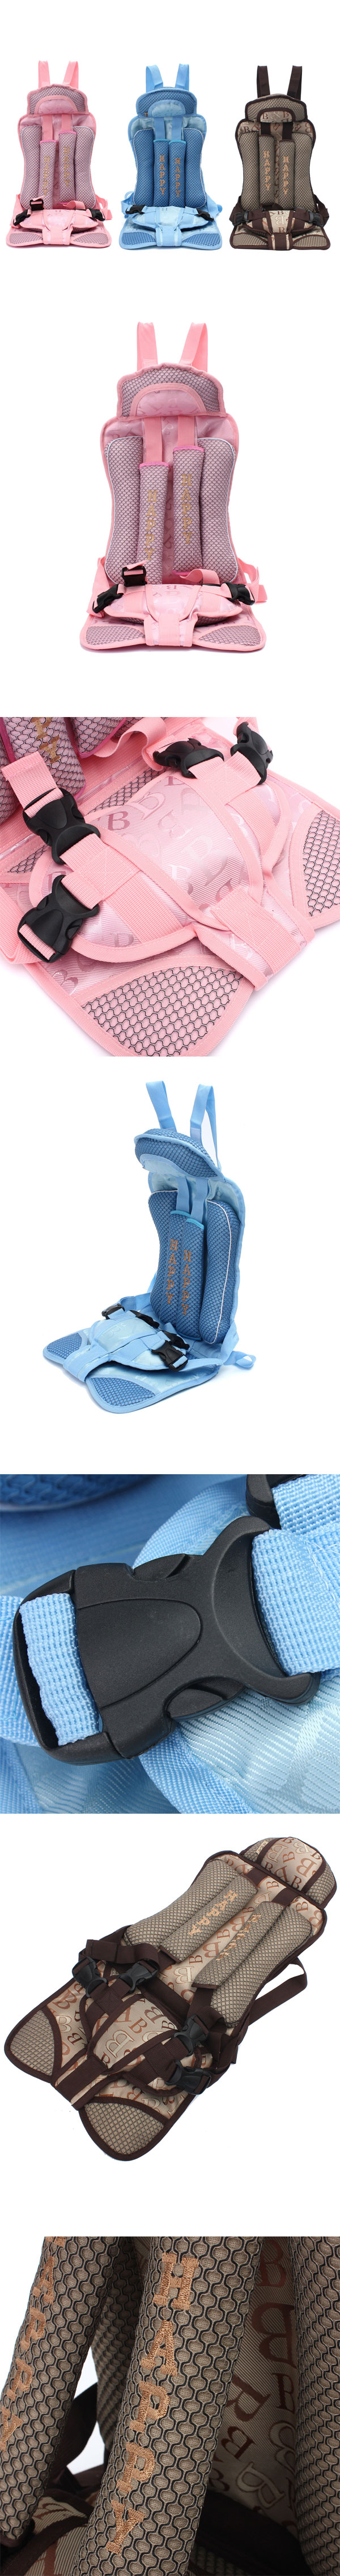 Portable Child Car Safety Seat Carrier Children Cushion Chairs